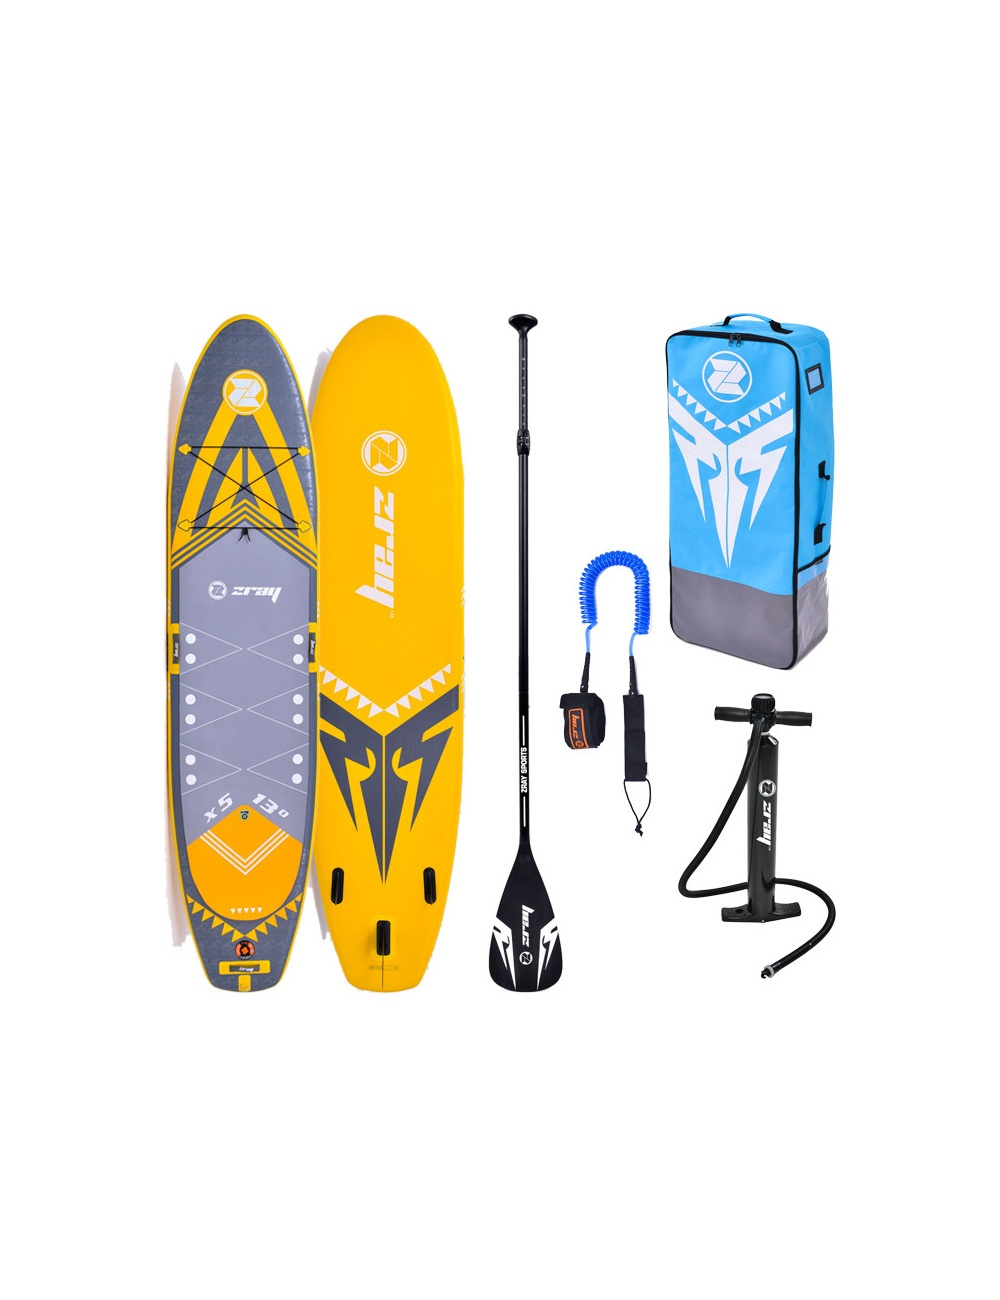 Zray X-rider XL 13' inflatable SUP board